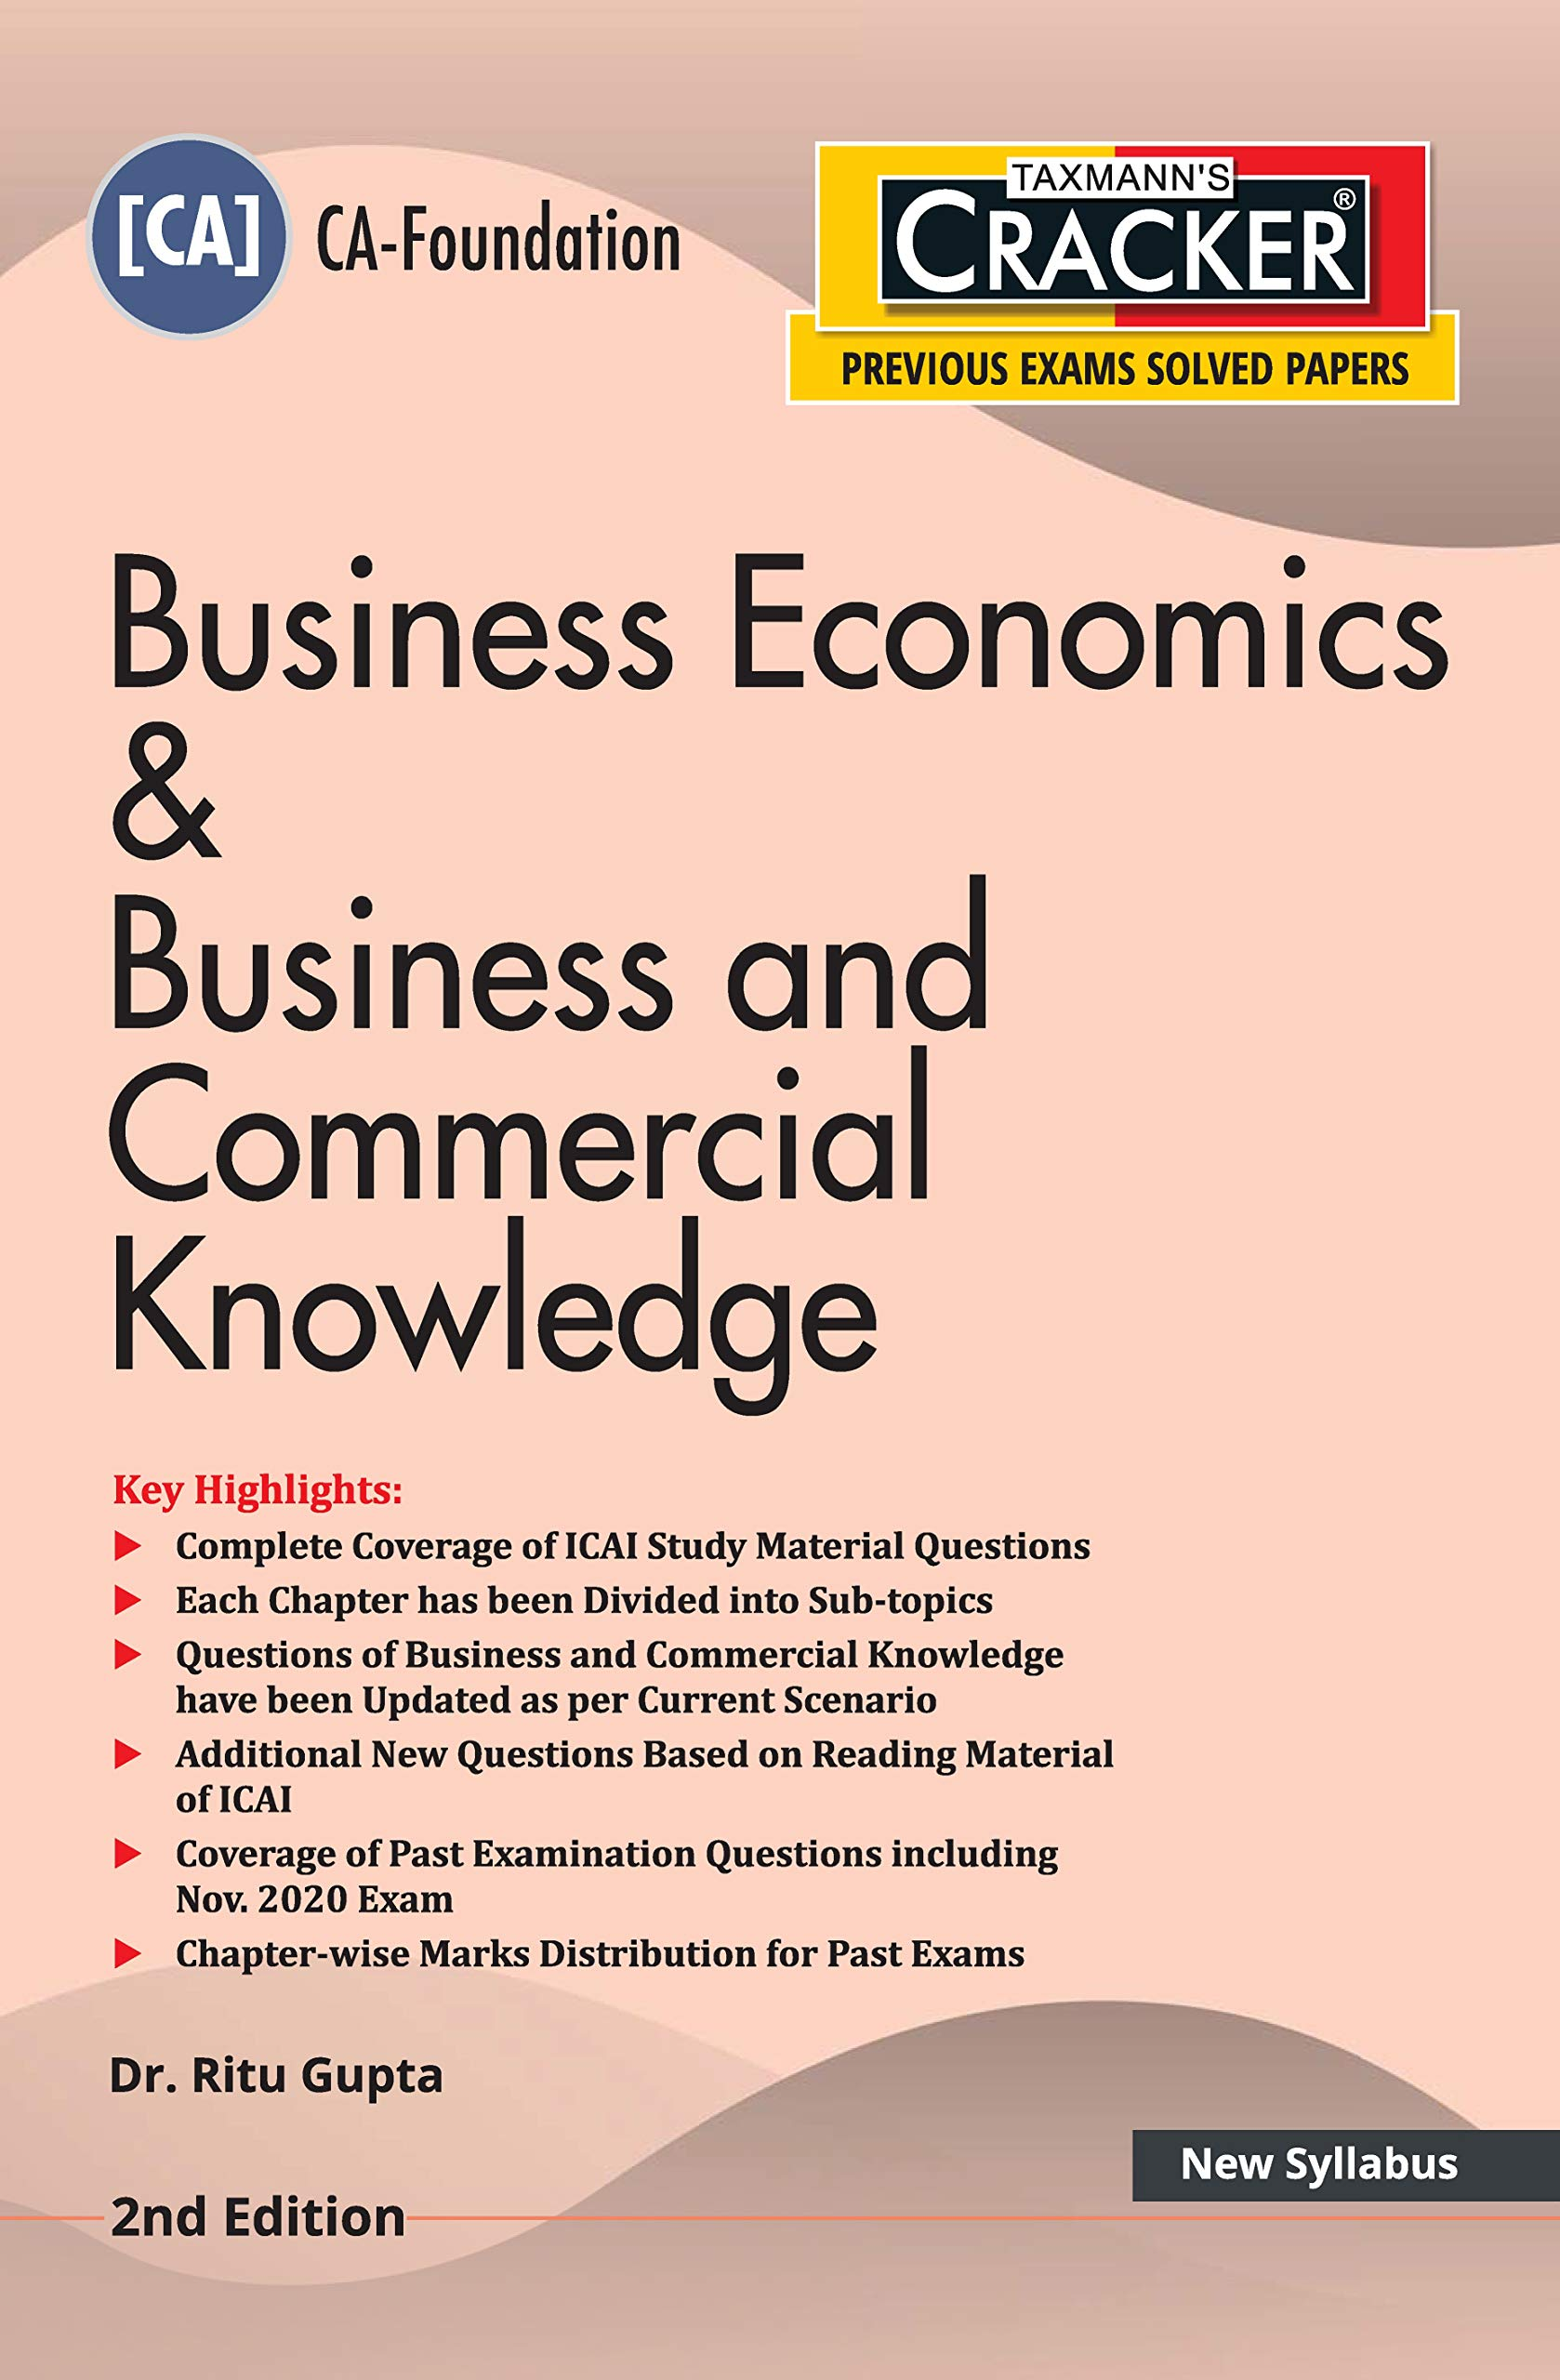 Taxmann's CRACKER – Business Economics & Business and Commercial Knowledge | CA-Foundation – New Syllabus | 2nd Edition | 2021